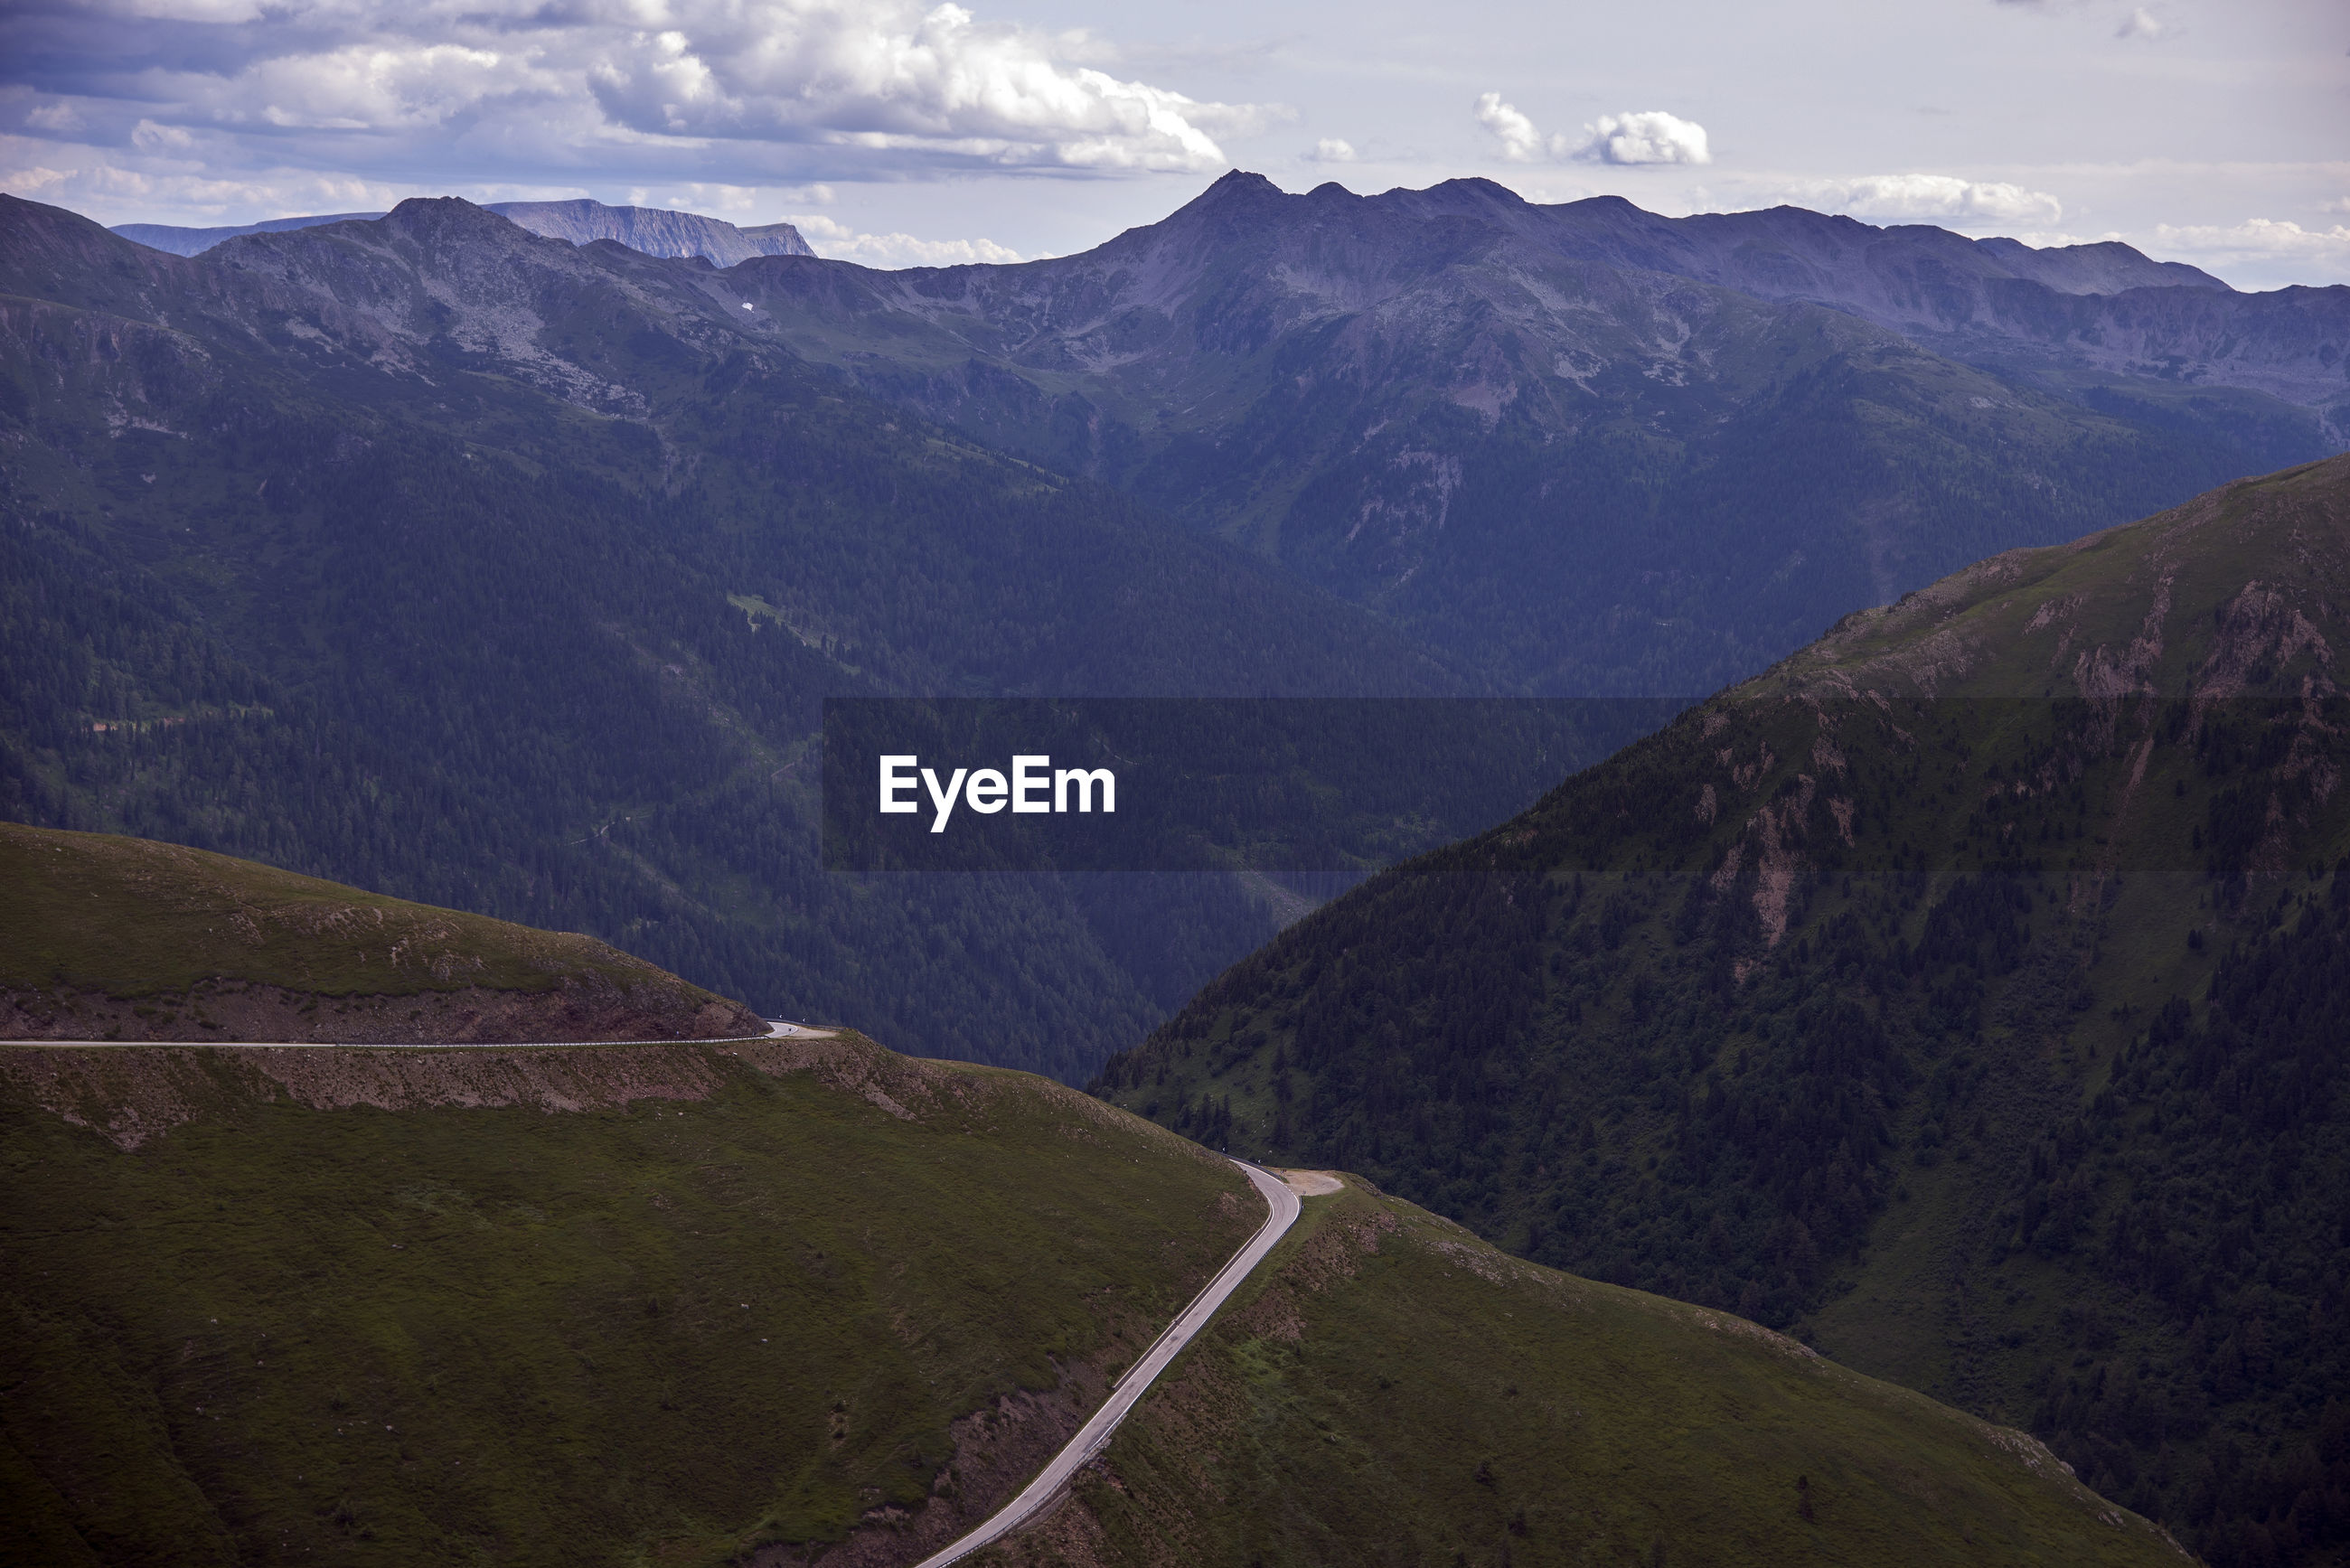 SCENIC VIEW OF MOUNTAIN ROAD AGAINST SKY